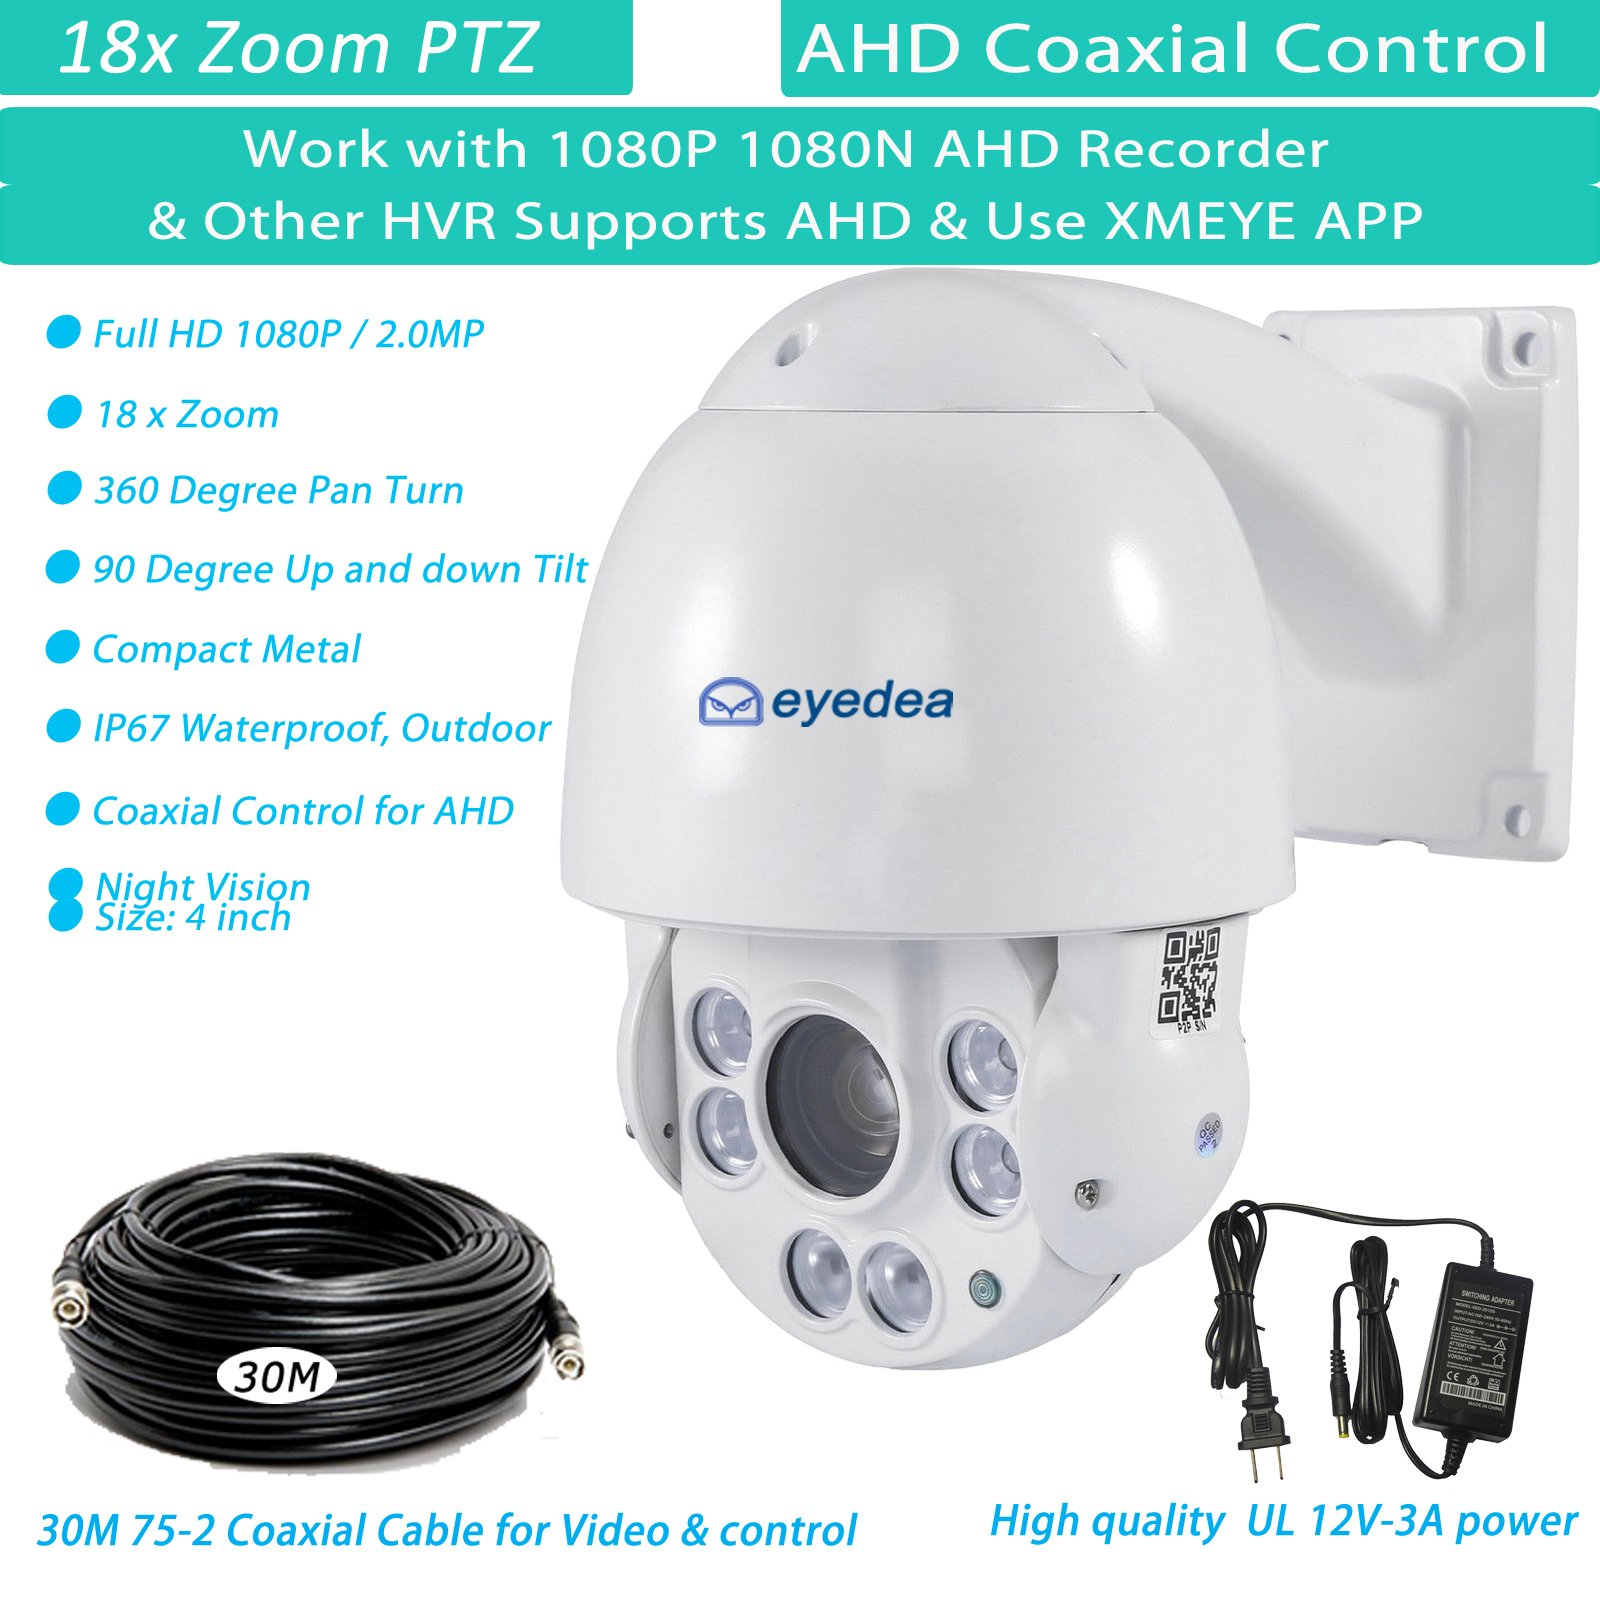 Eyedea 1080P 18 x AHD Outdoor Smart PTZ Speed Dome Pan Tilt Zoom 2.0MP Camera IR Infrared Night Vision Remote RS485 Coaxial Control 5500TVL w/ 30 M Meters 75-2 Coaxial Cable Wire for AHD Recorder